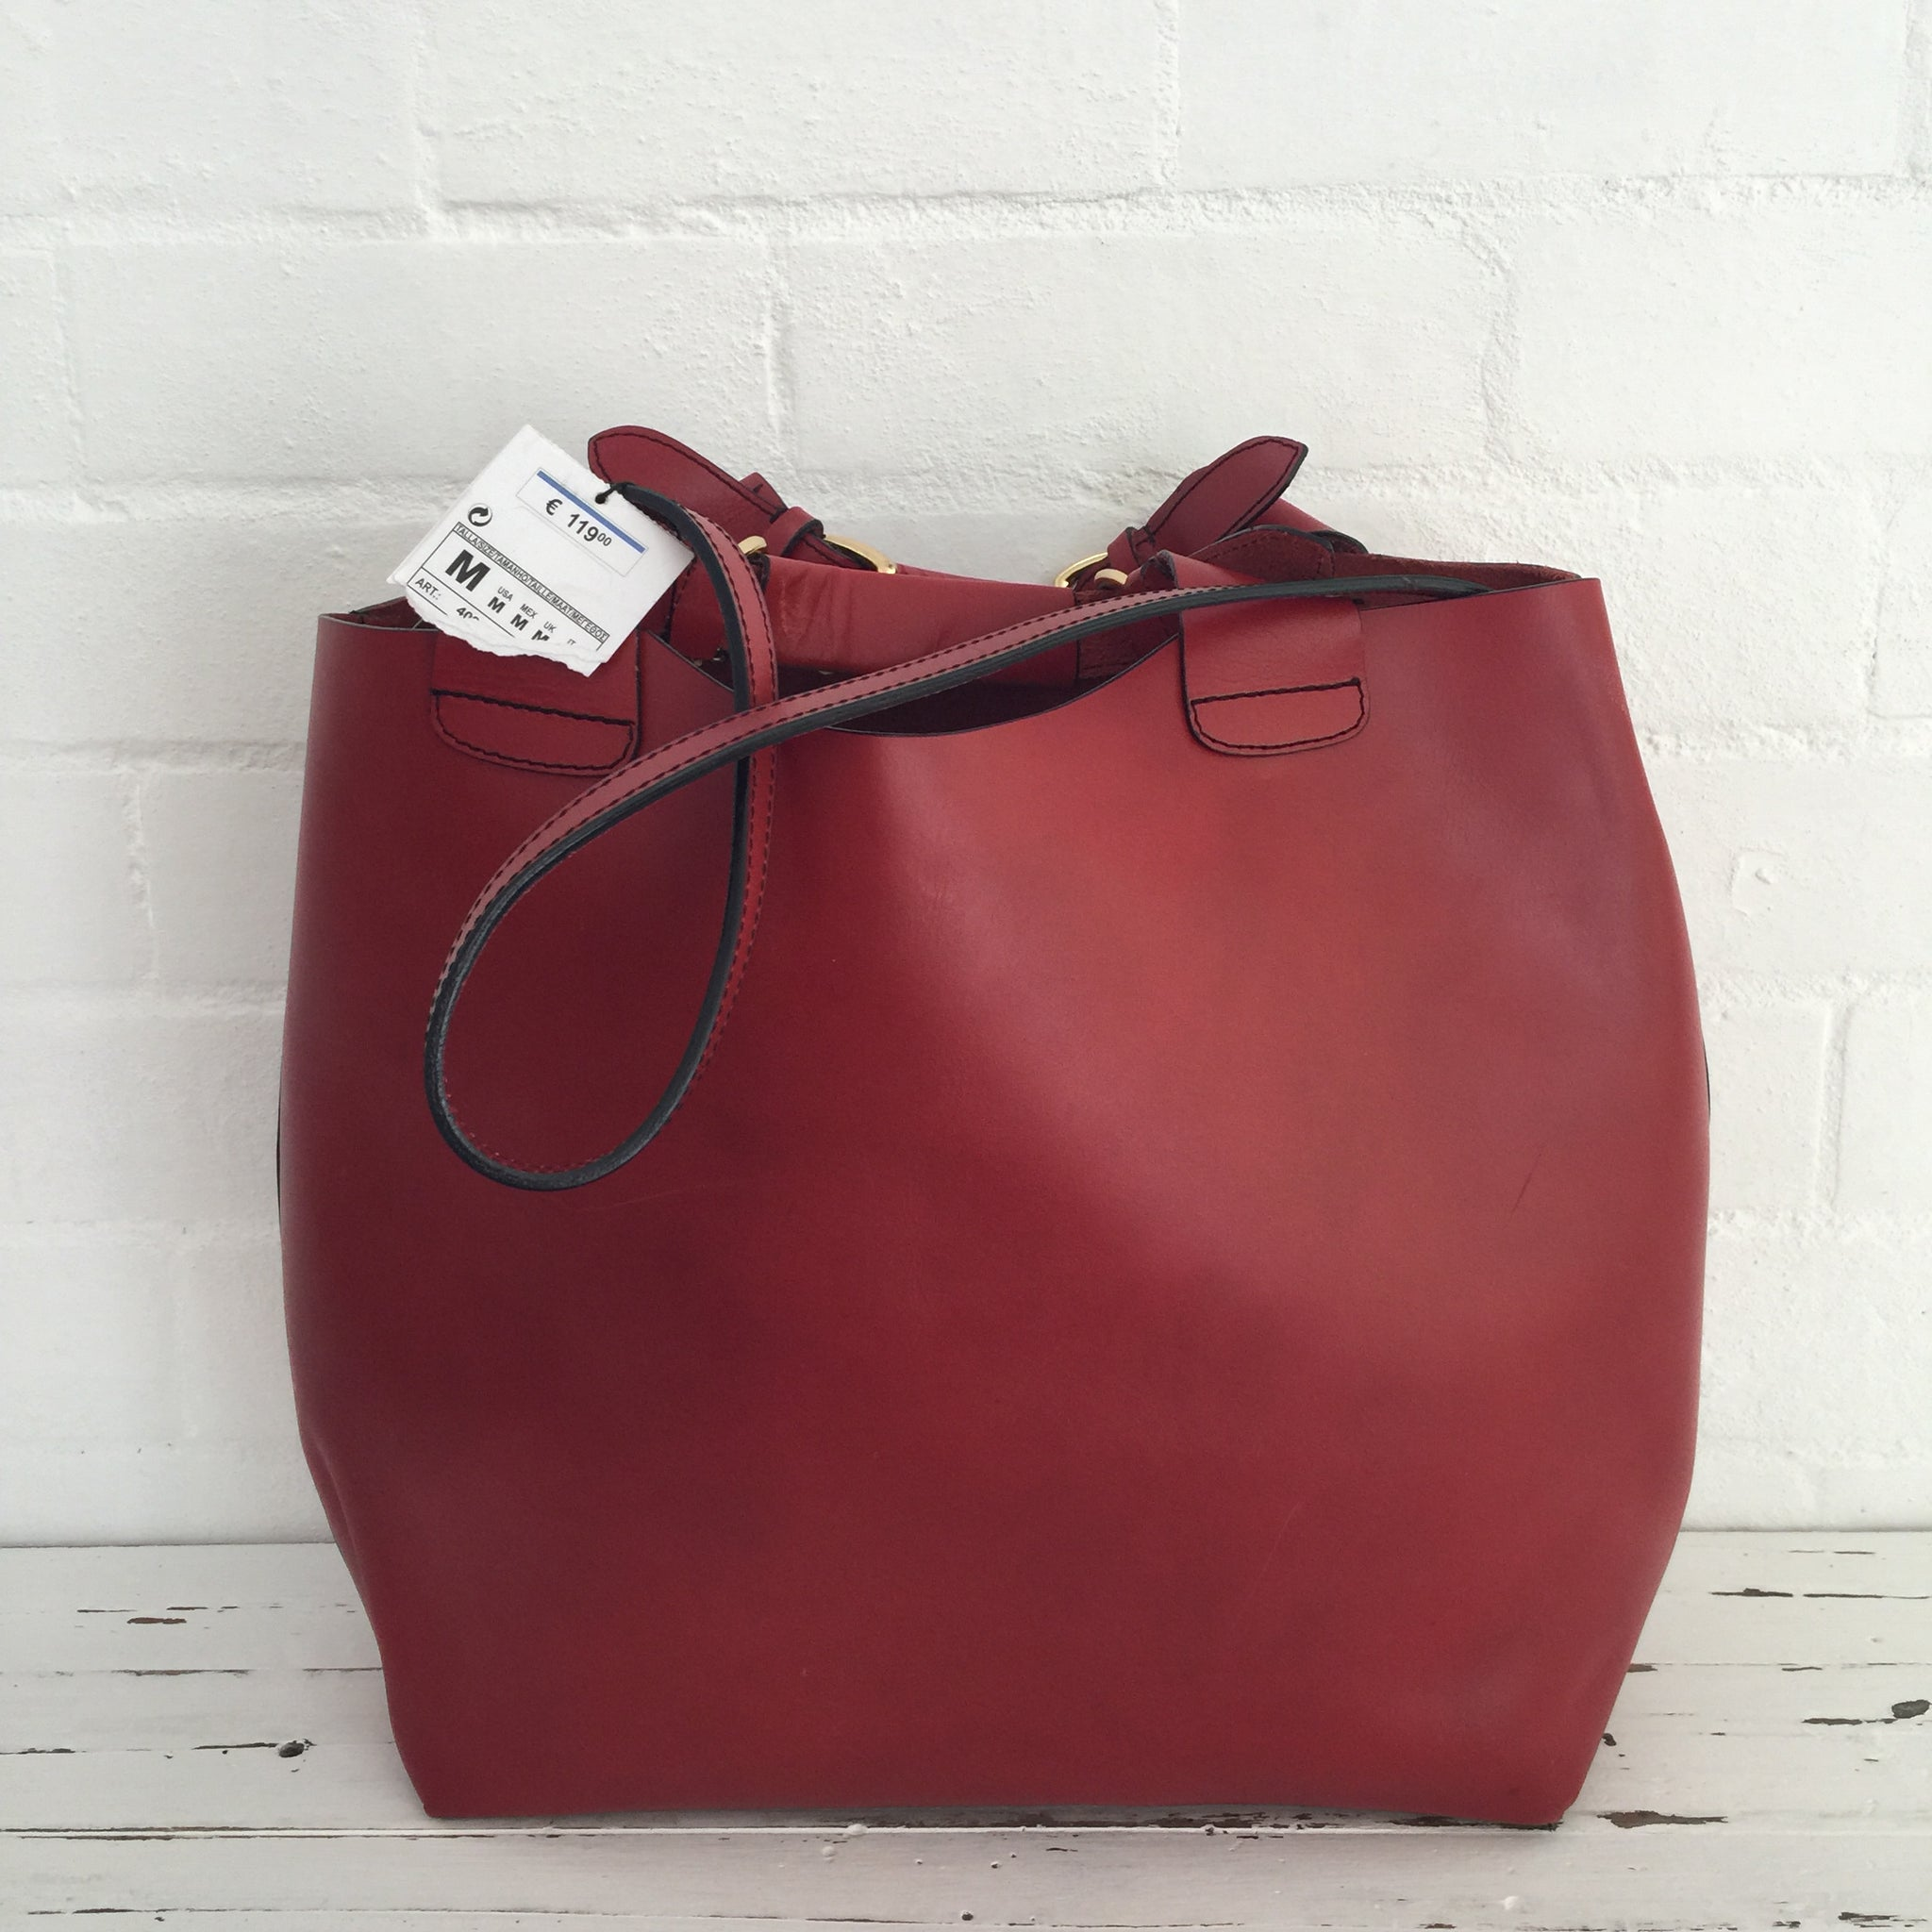 ZARA with TAG Bucket Bag Genuine LEATHER Red Handbag